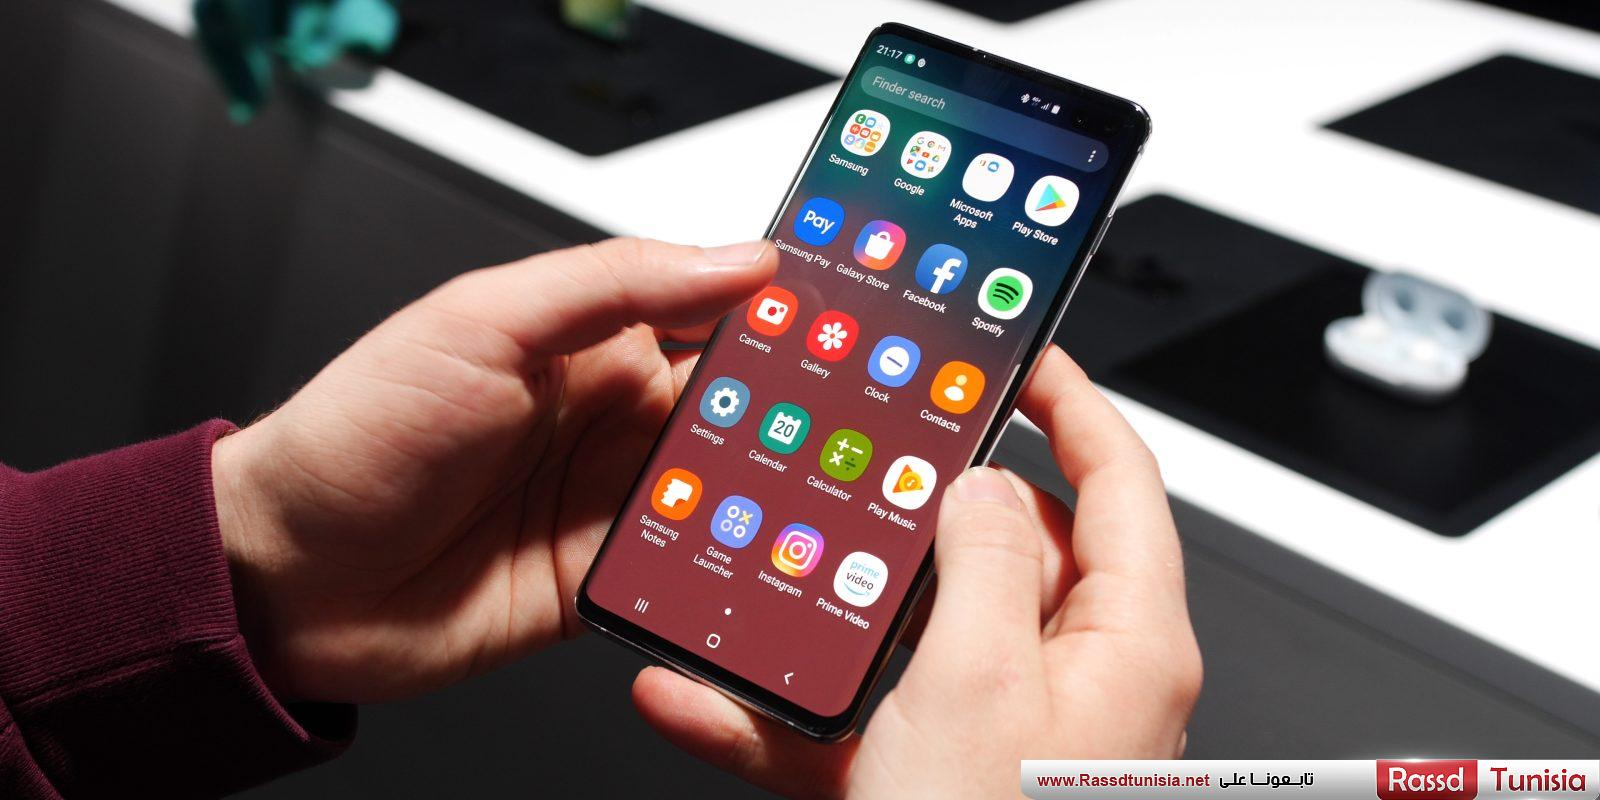 Samsung-Galaxy-S10-and-S10-hands-on